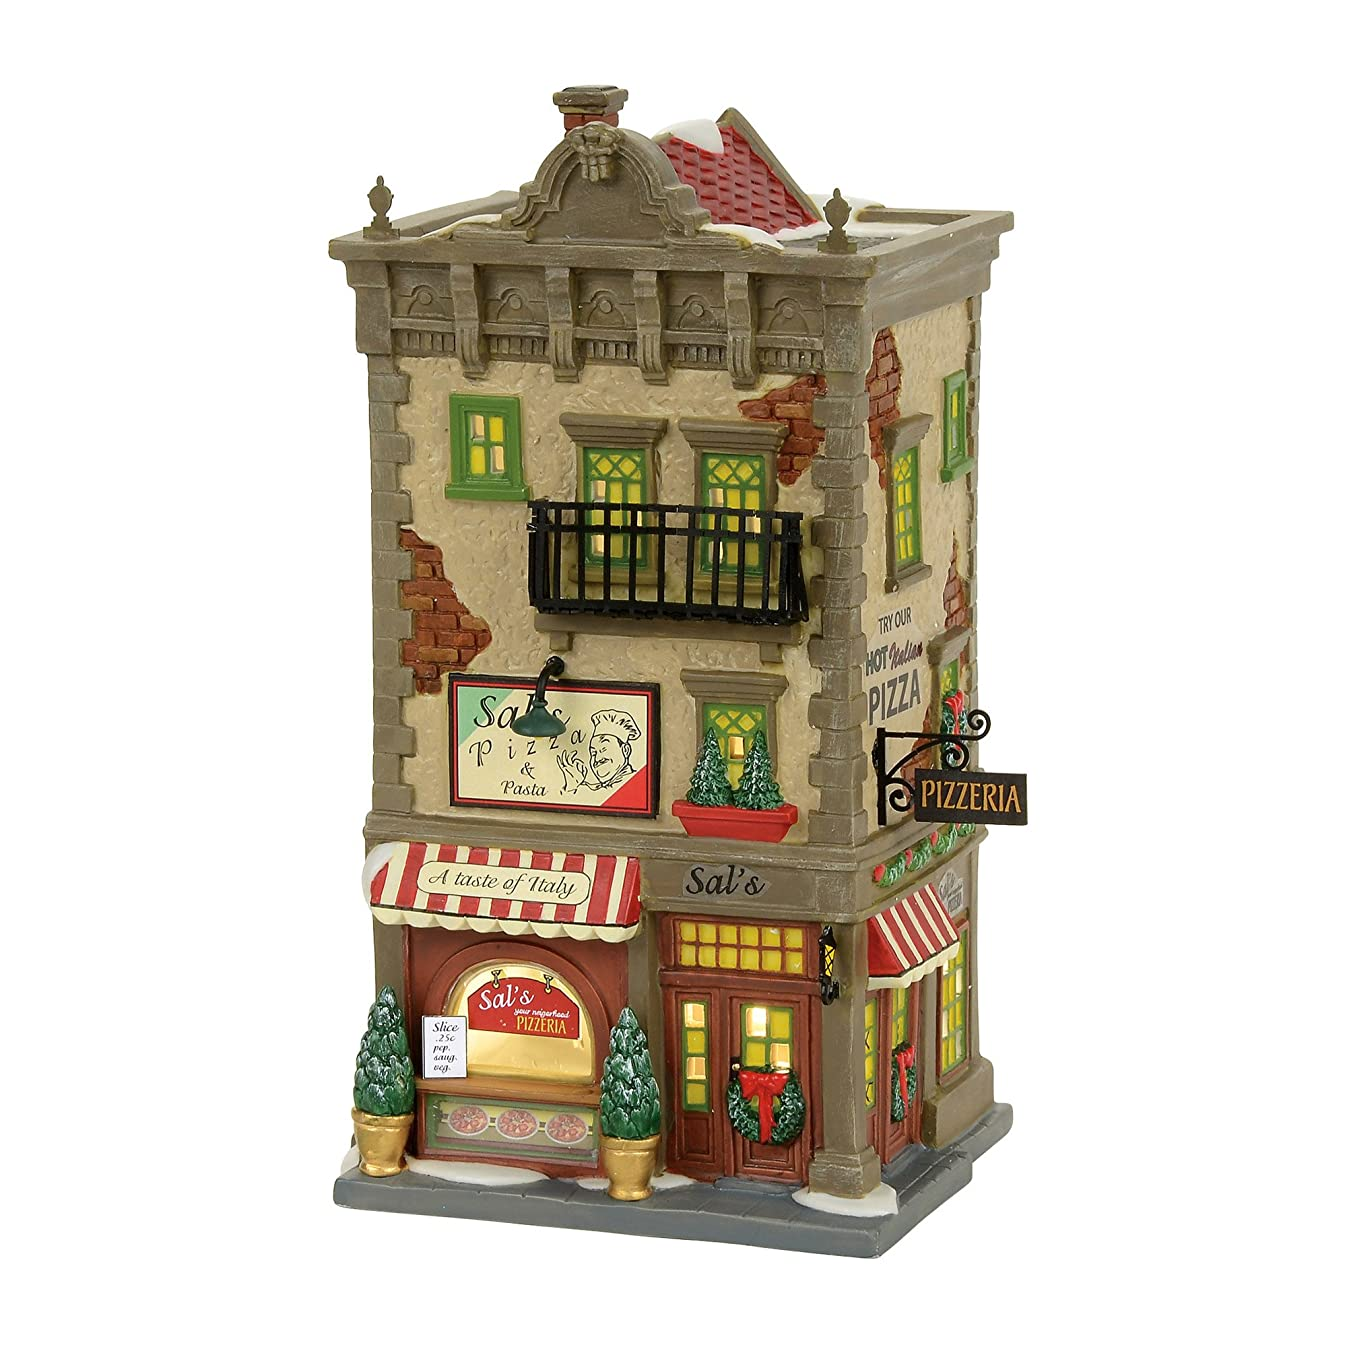 Department 56 Christmas in The City Sal's Pizza and Pasta Village Lit Building, Multicolor